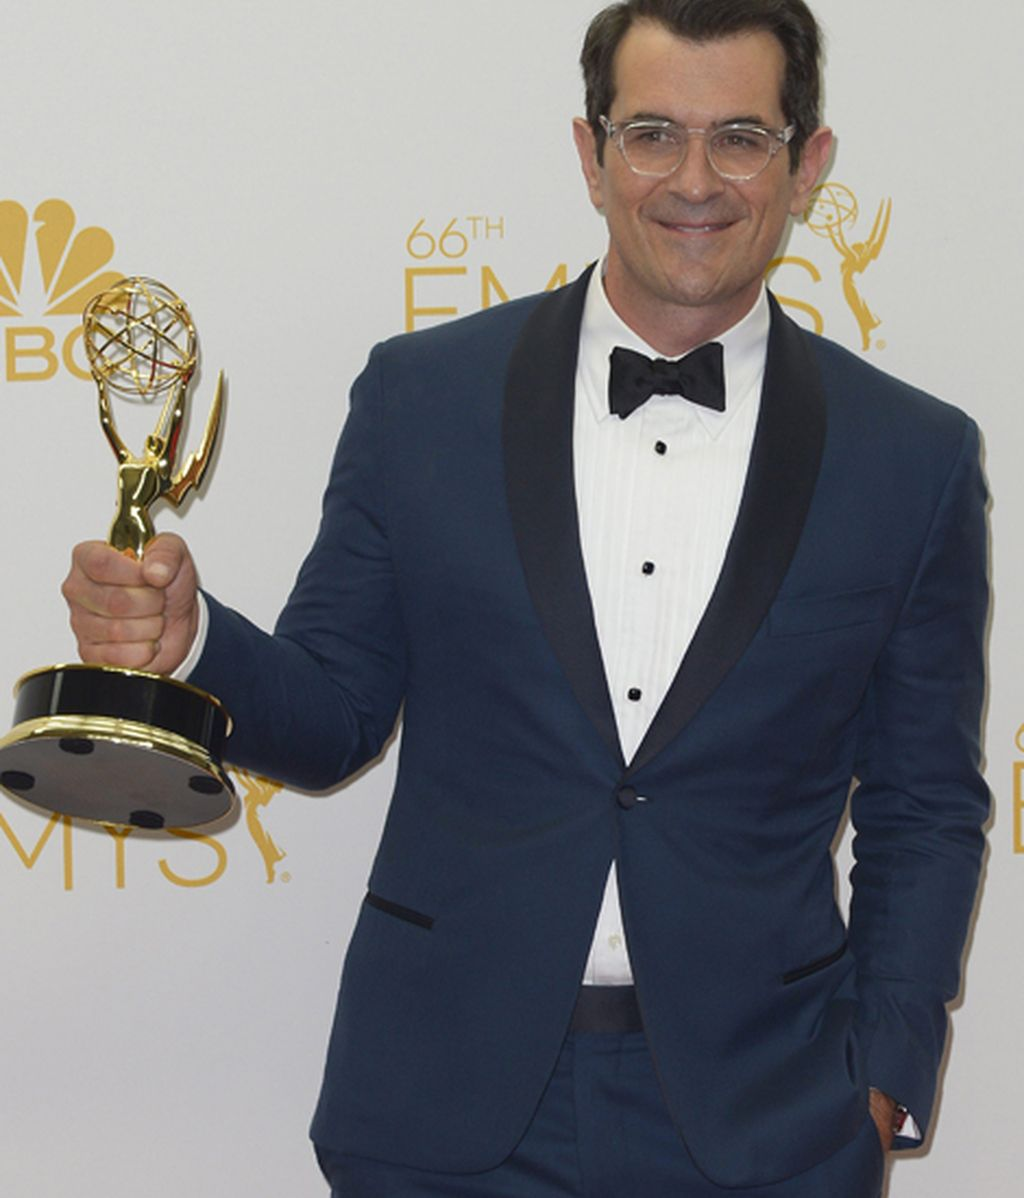 Ty Burrel, mejor actor secundario en comedia por 'Modern family'